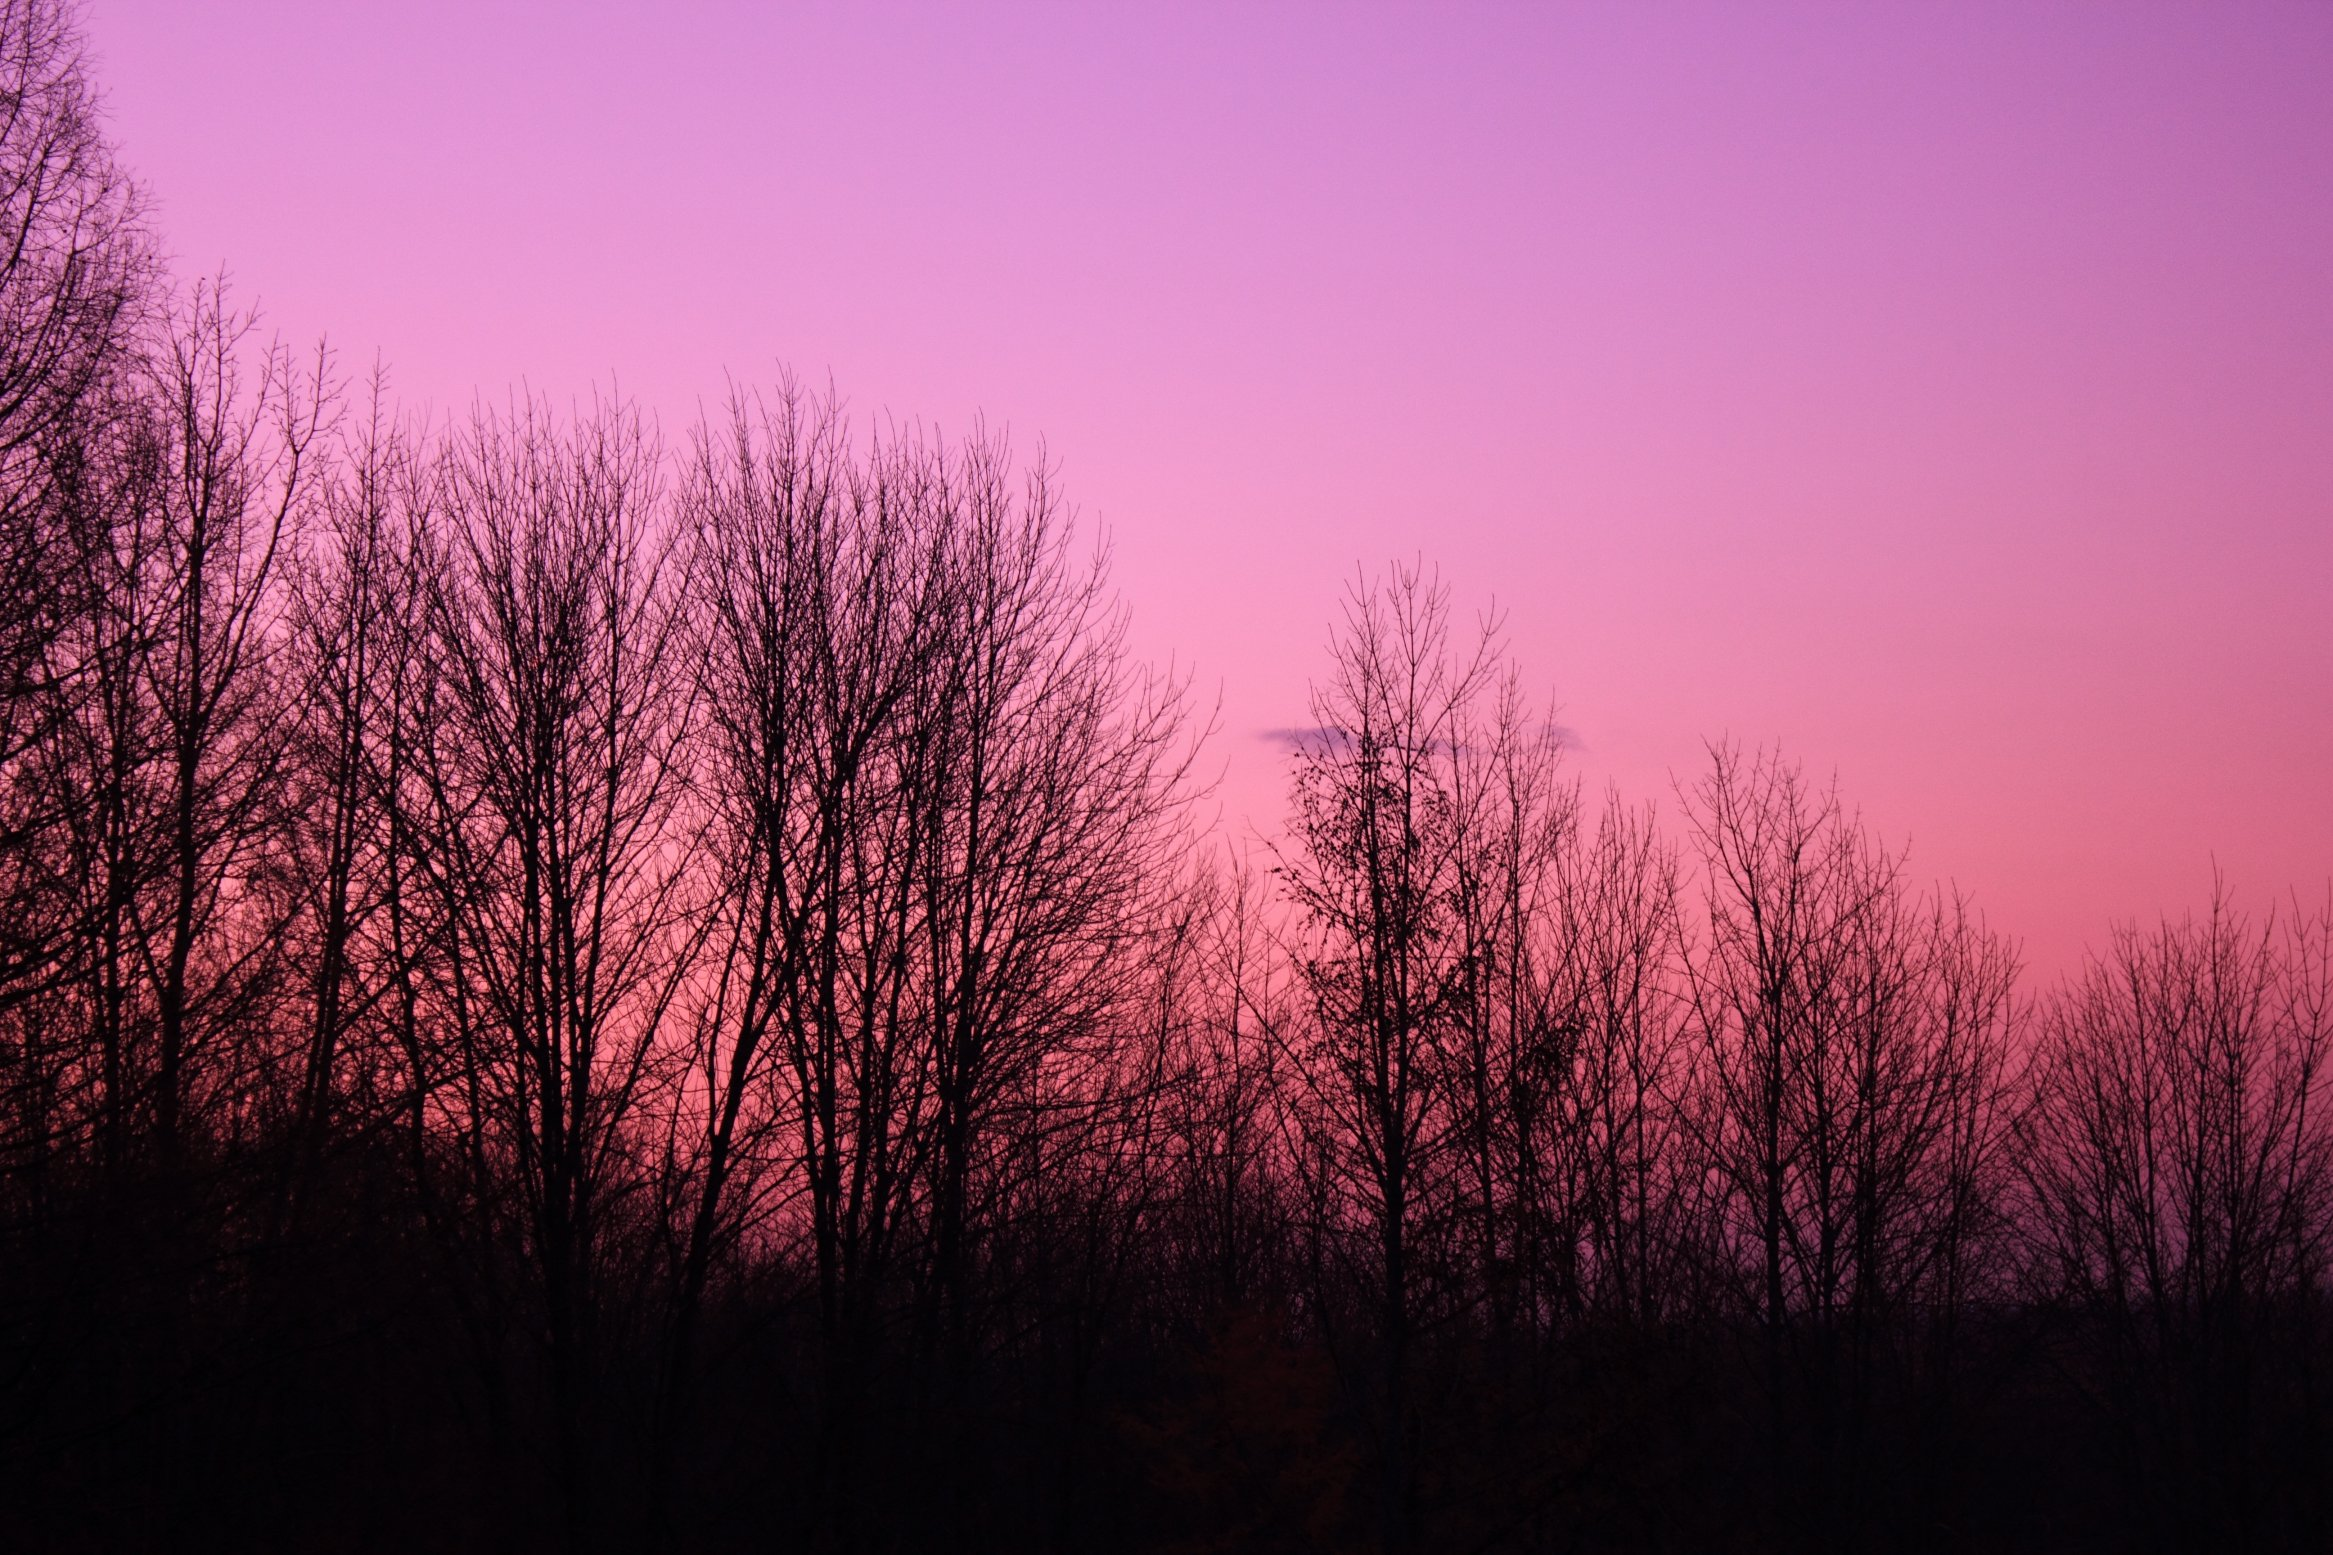 wisconsin-pike-lake-state-park-purple-sky-over-trees.jpg